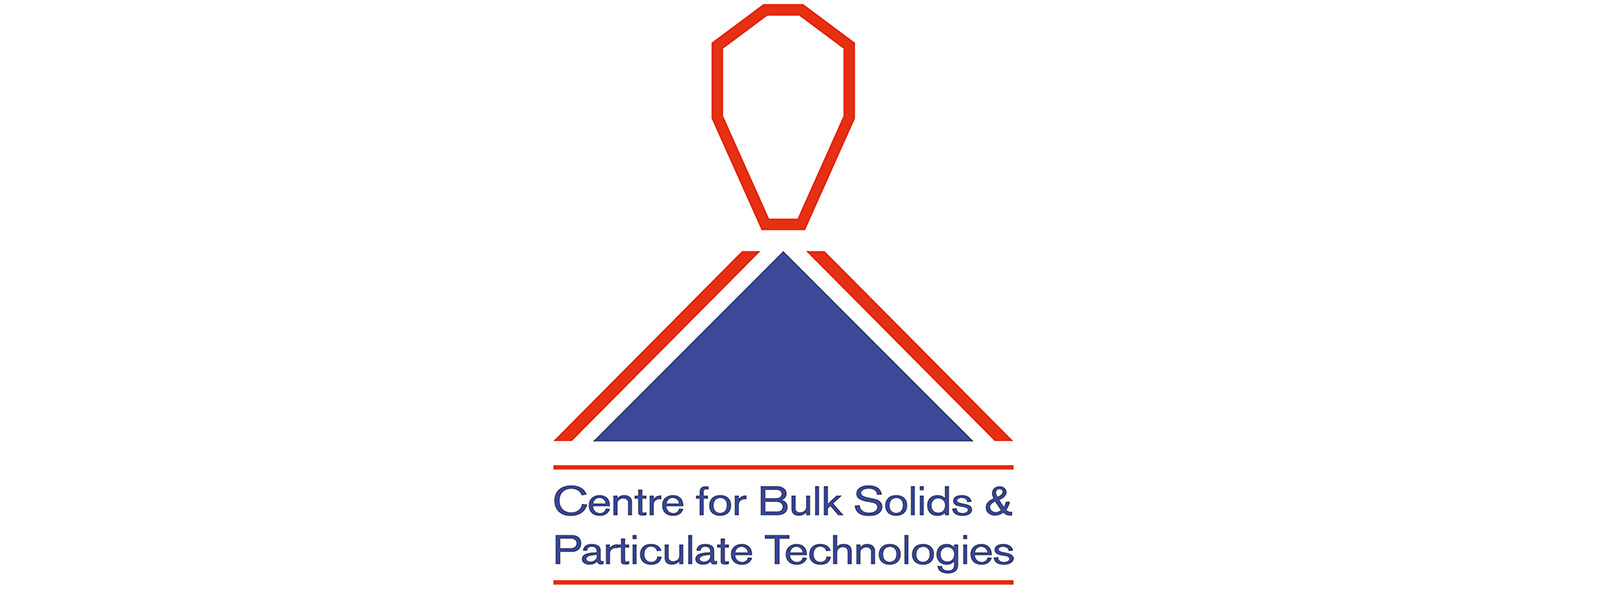 Centre for Bulk Solids and Particulate Technologies